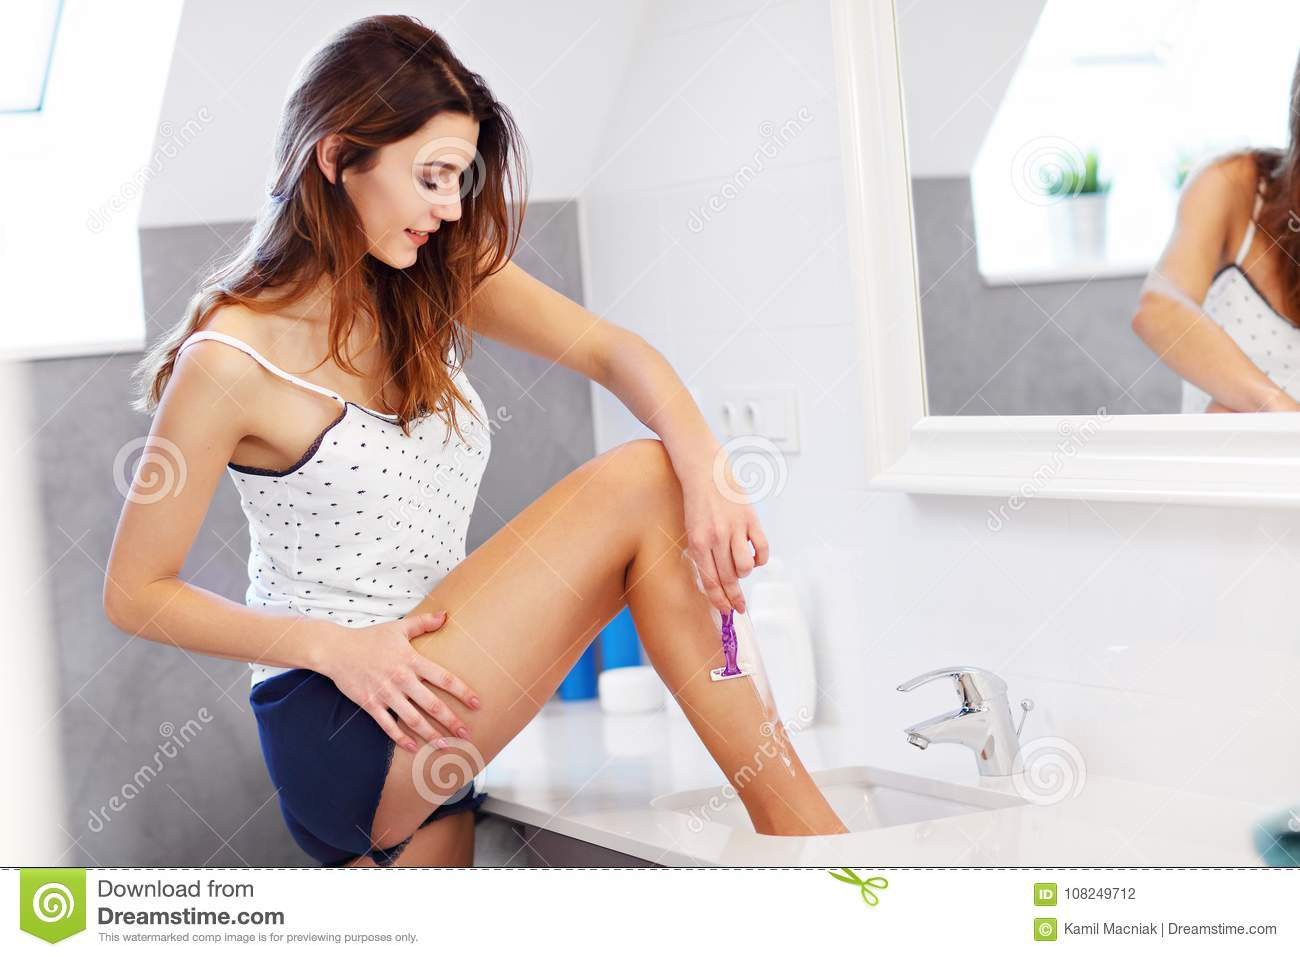 Young woman shaving legs in bathroom in the morning